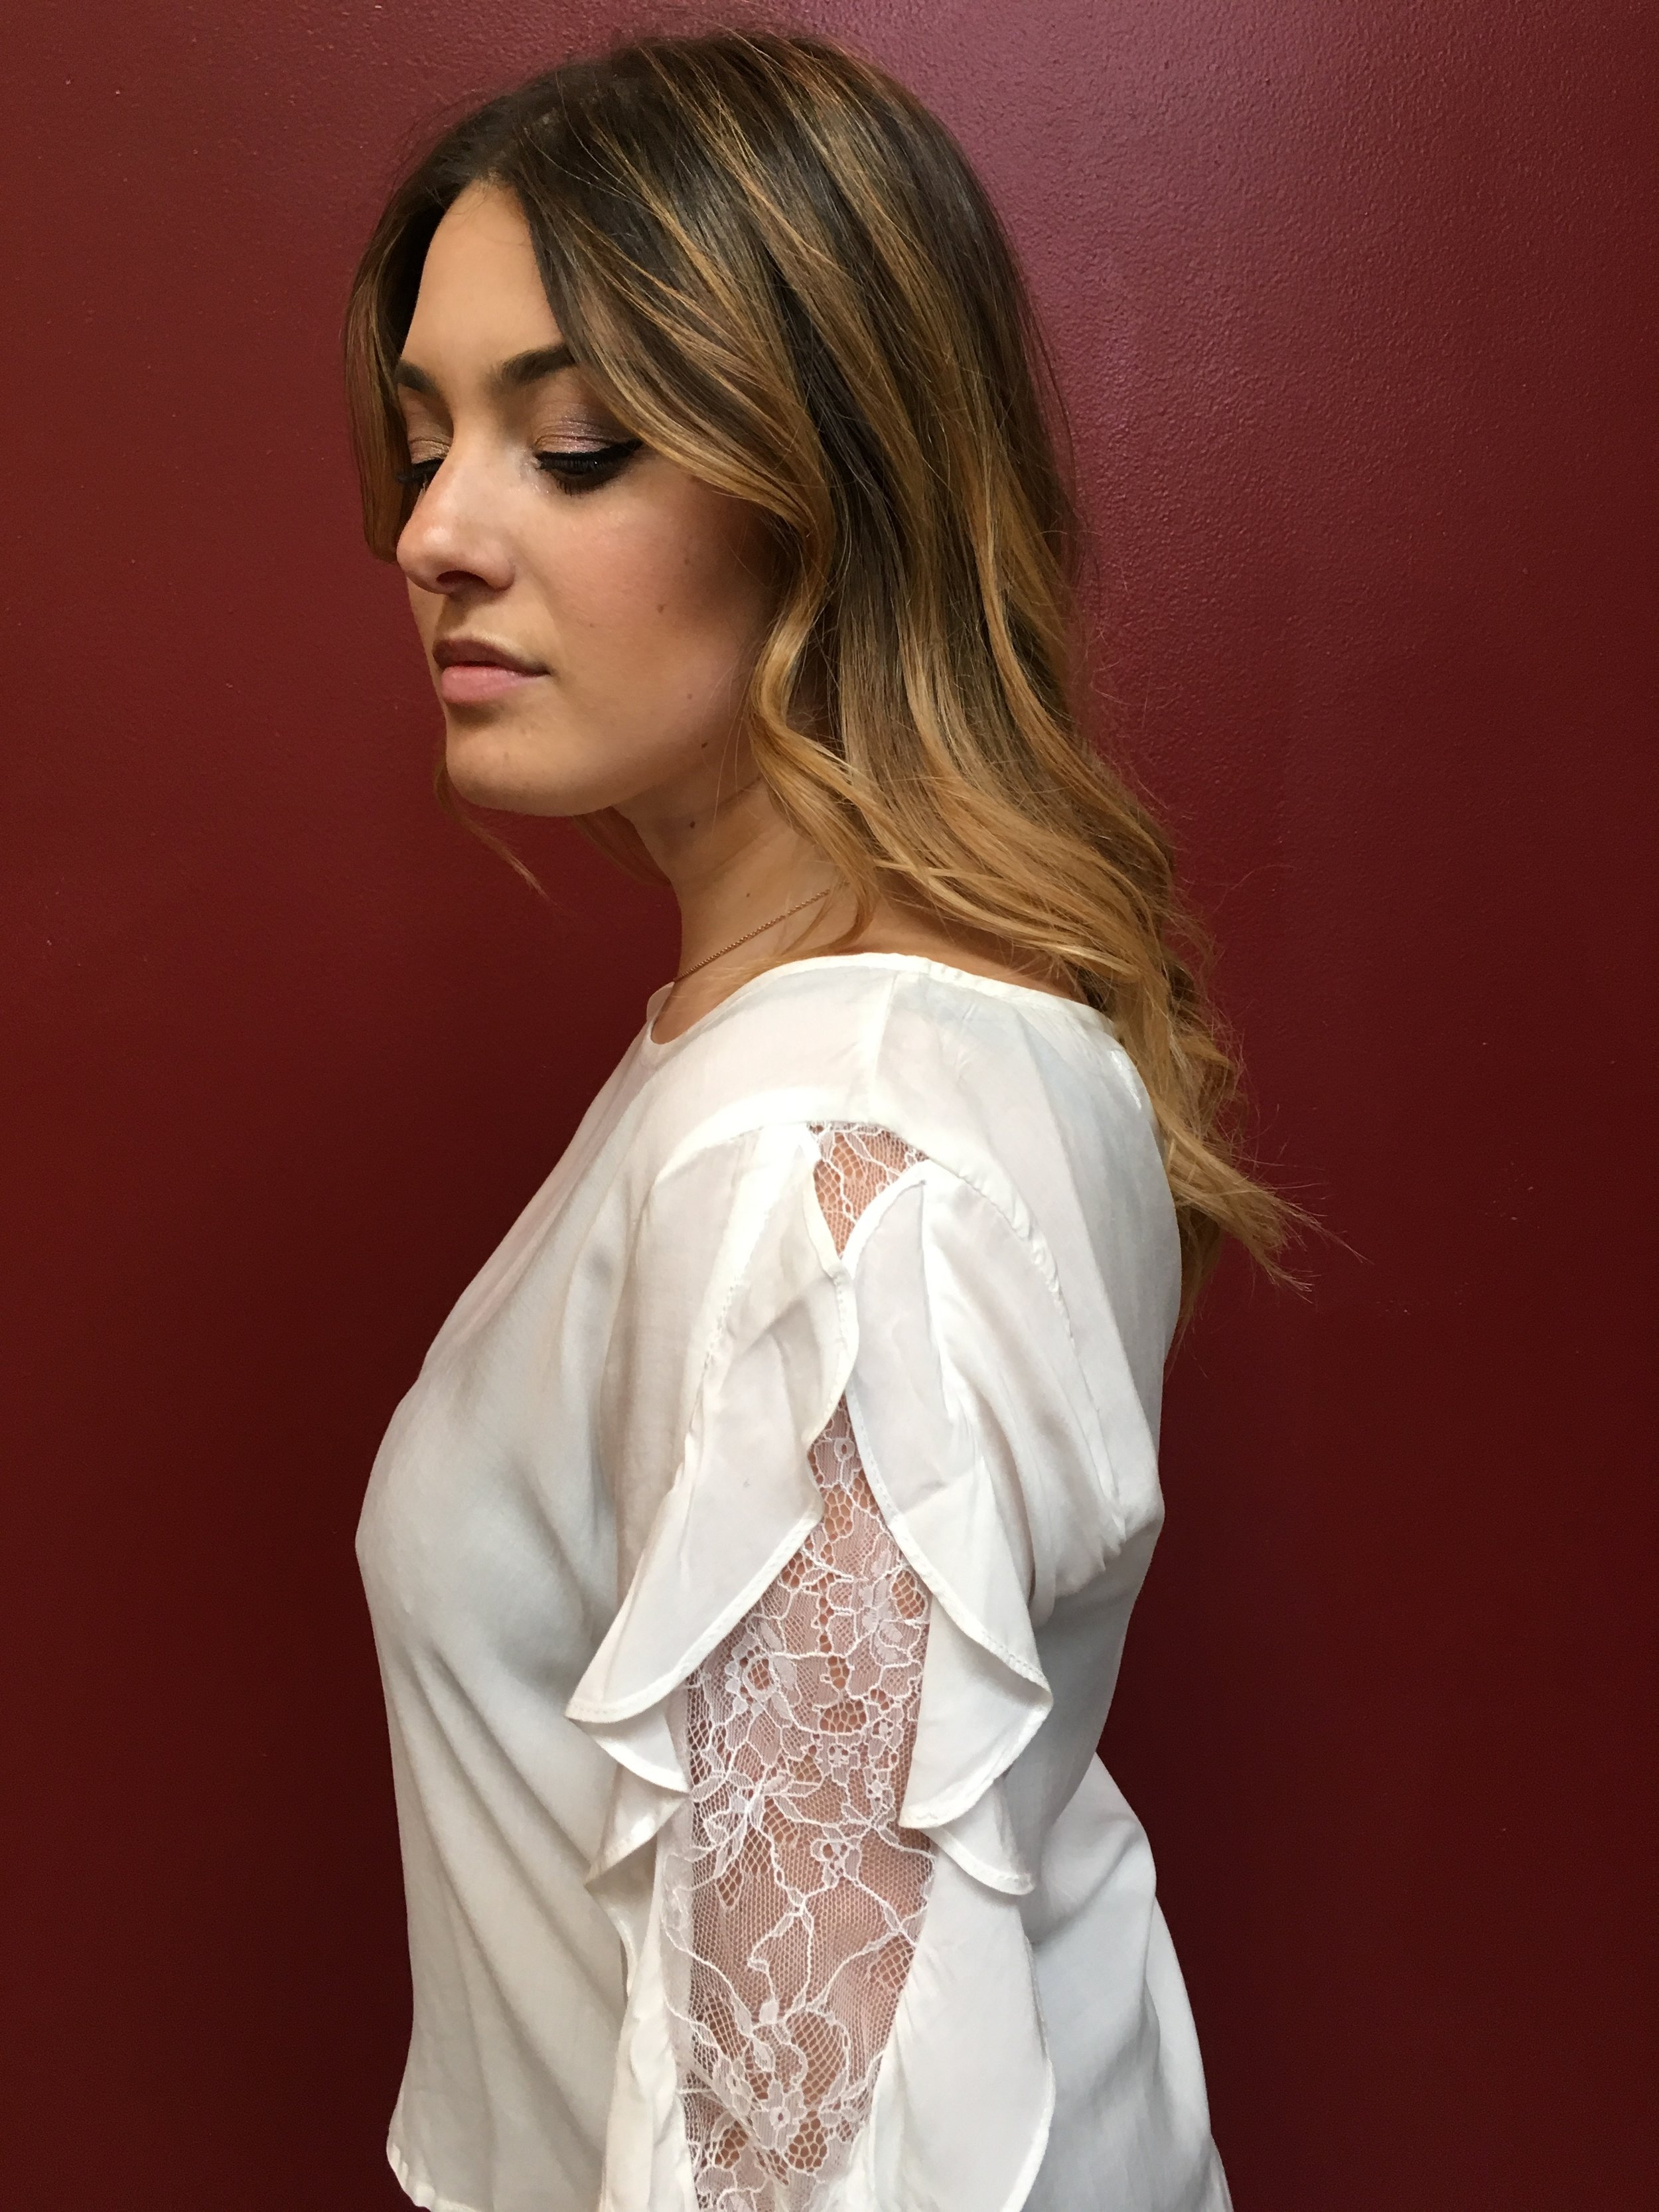 Play with ruffles and lace this season Velvet Ruffled Lace Blouse $160